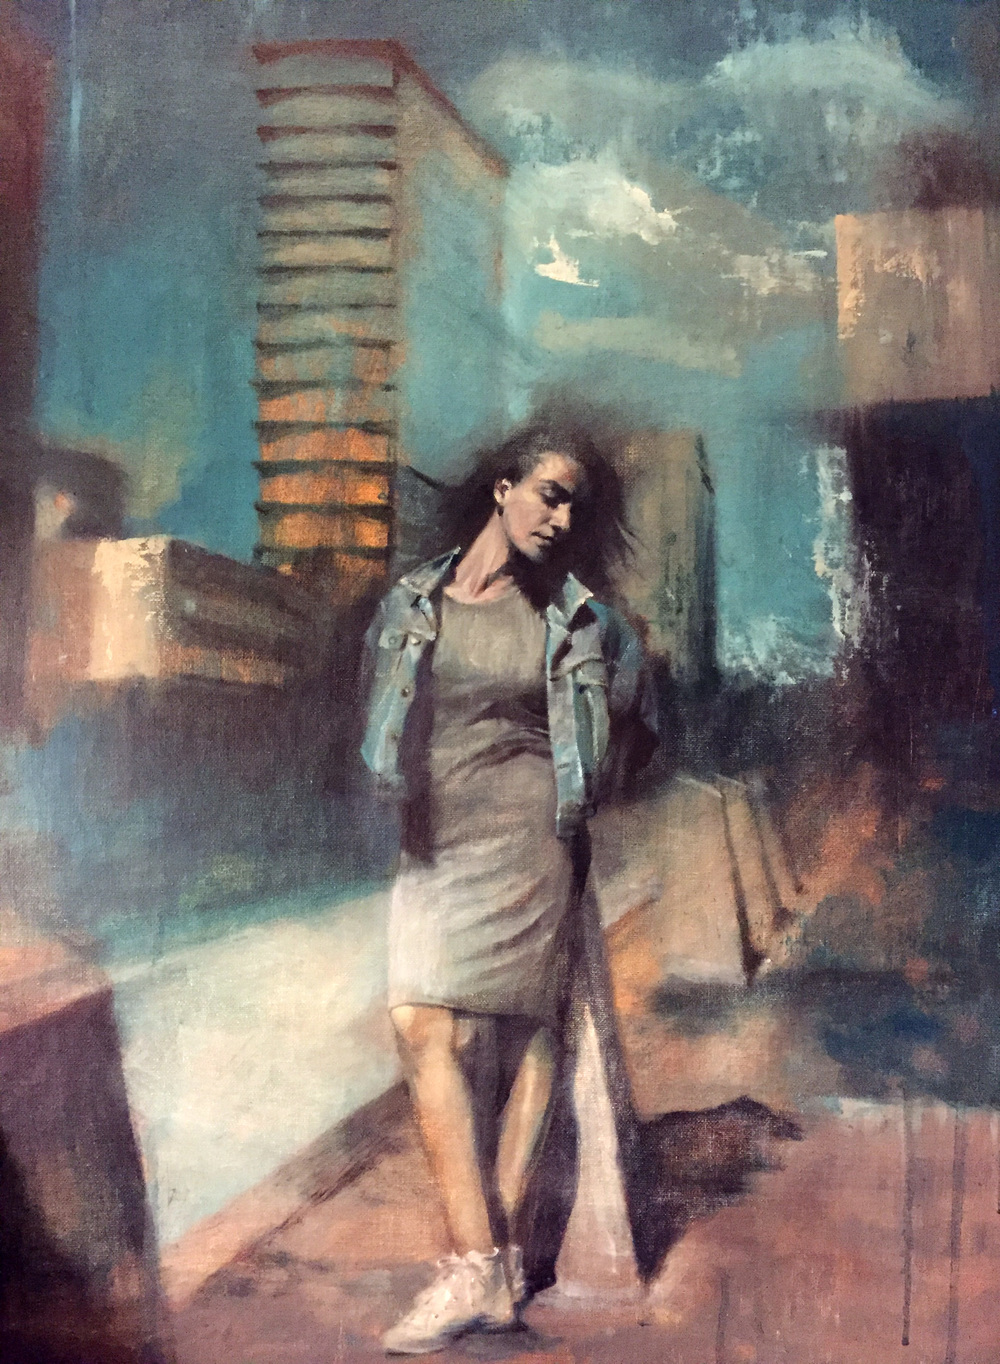 Chris Valentine  'City of Shadows'  Oil on canvas board  71 x 56 cm